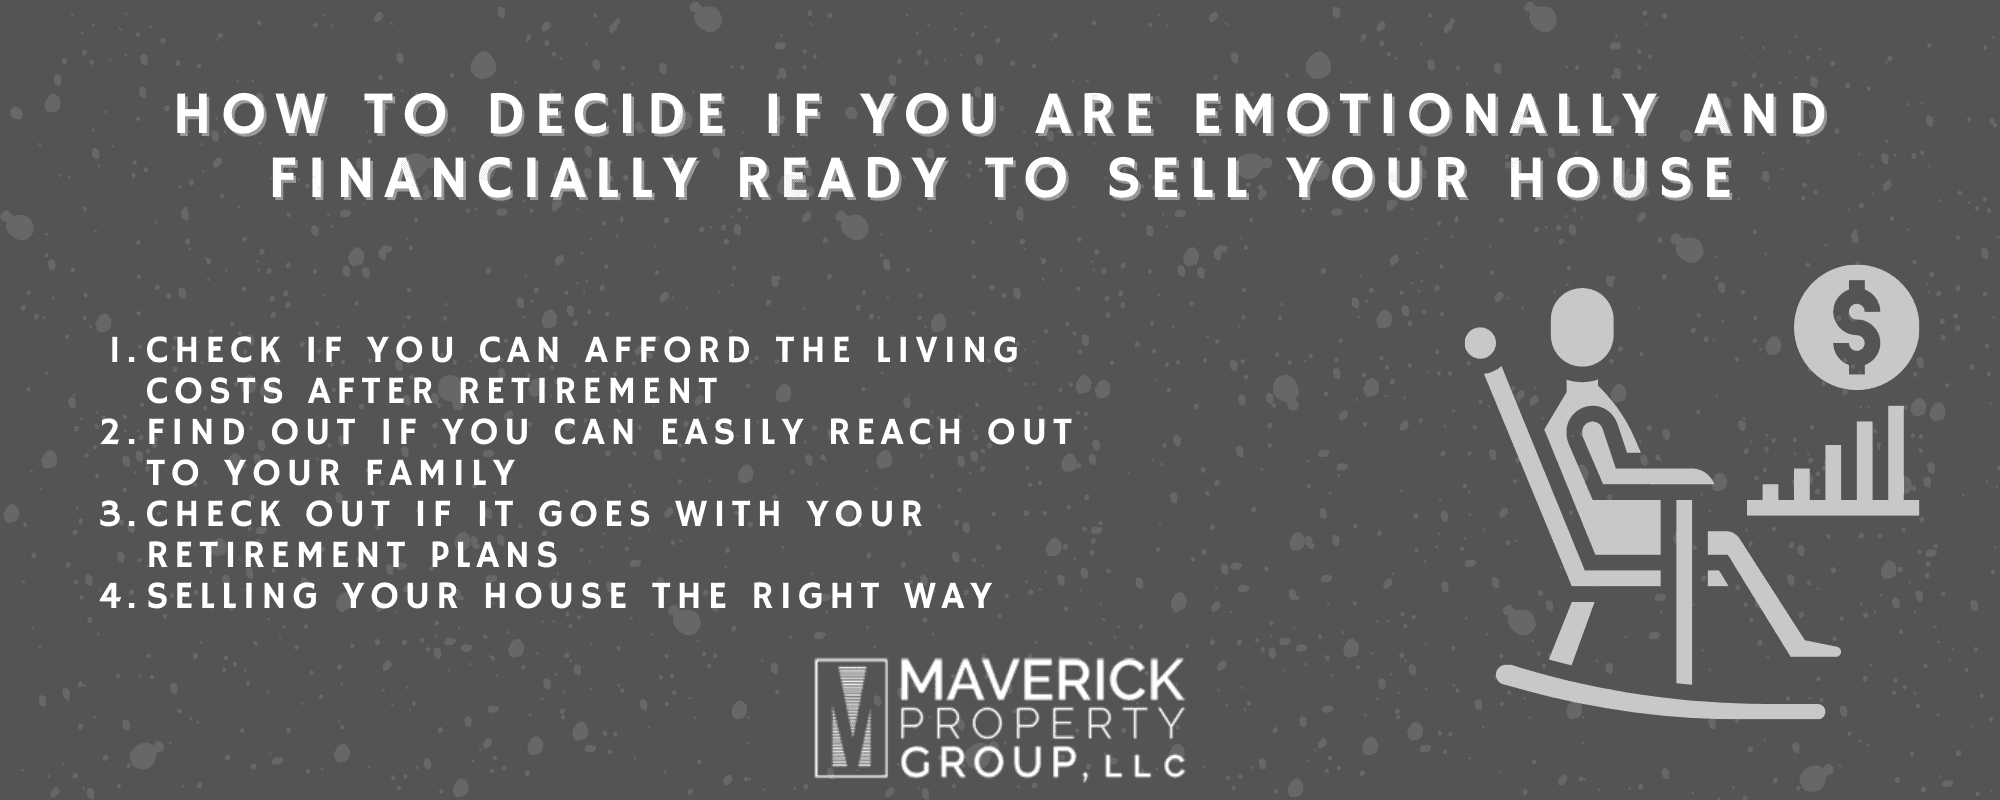 How To Decide If You Are Emotionally And Financially Ready To Sell Your House